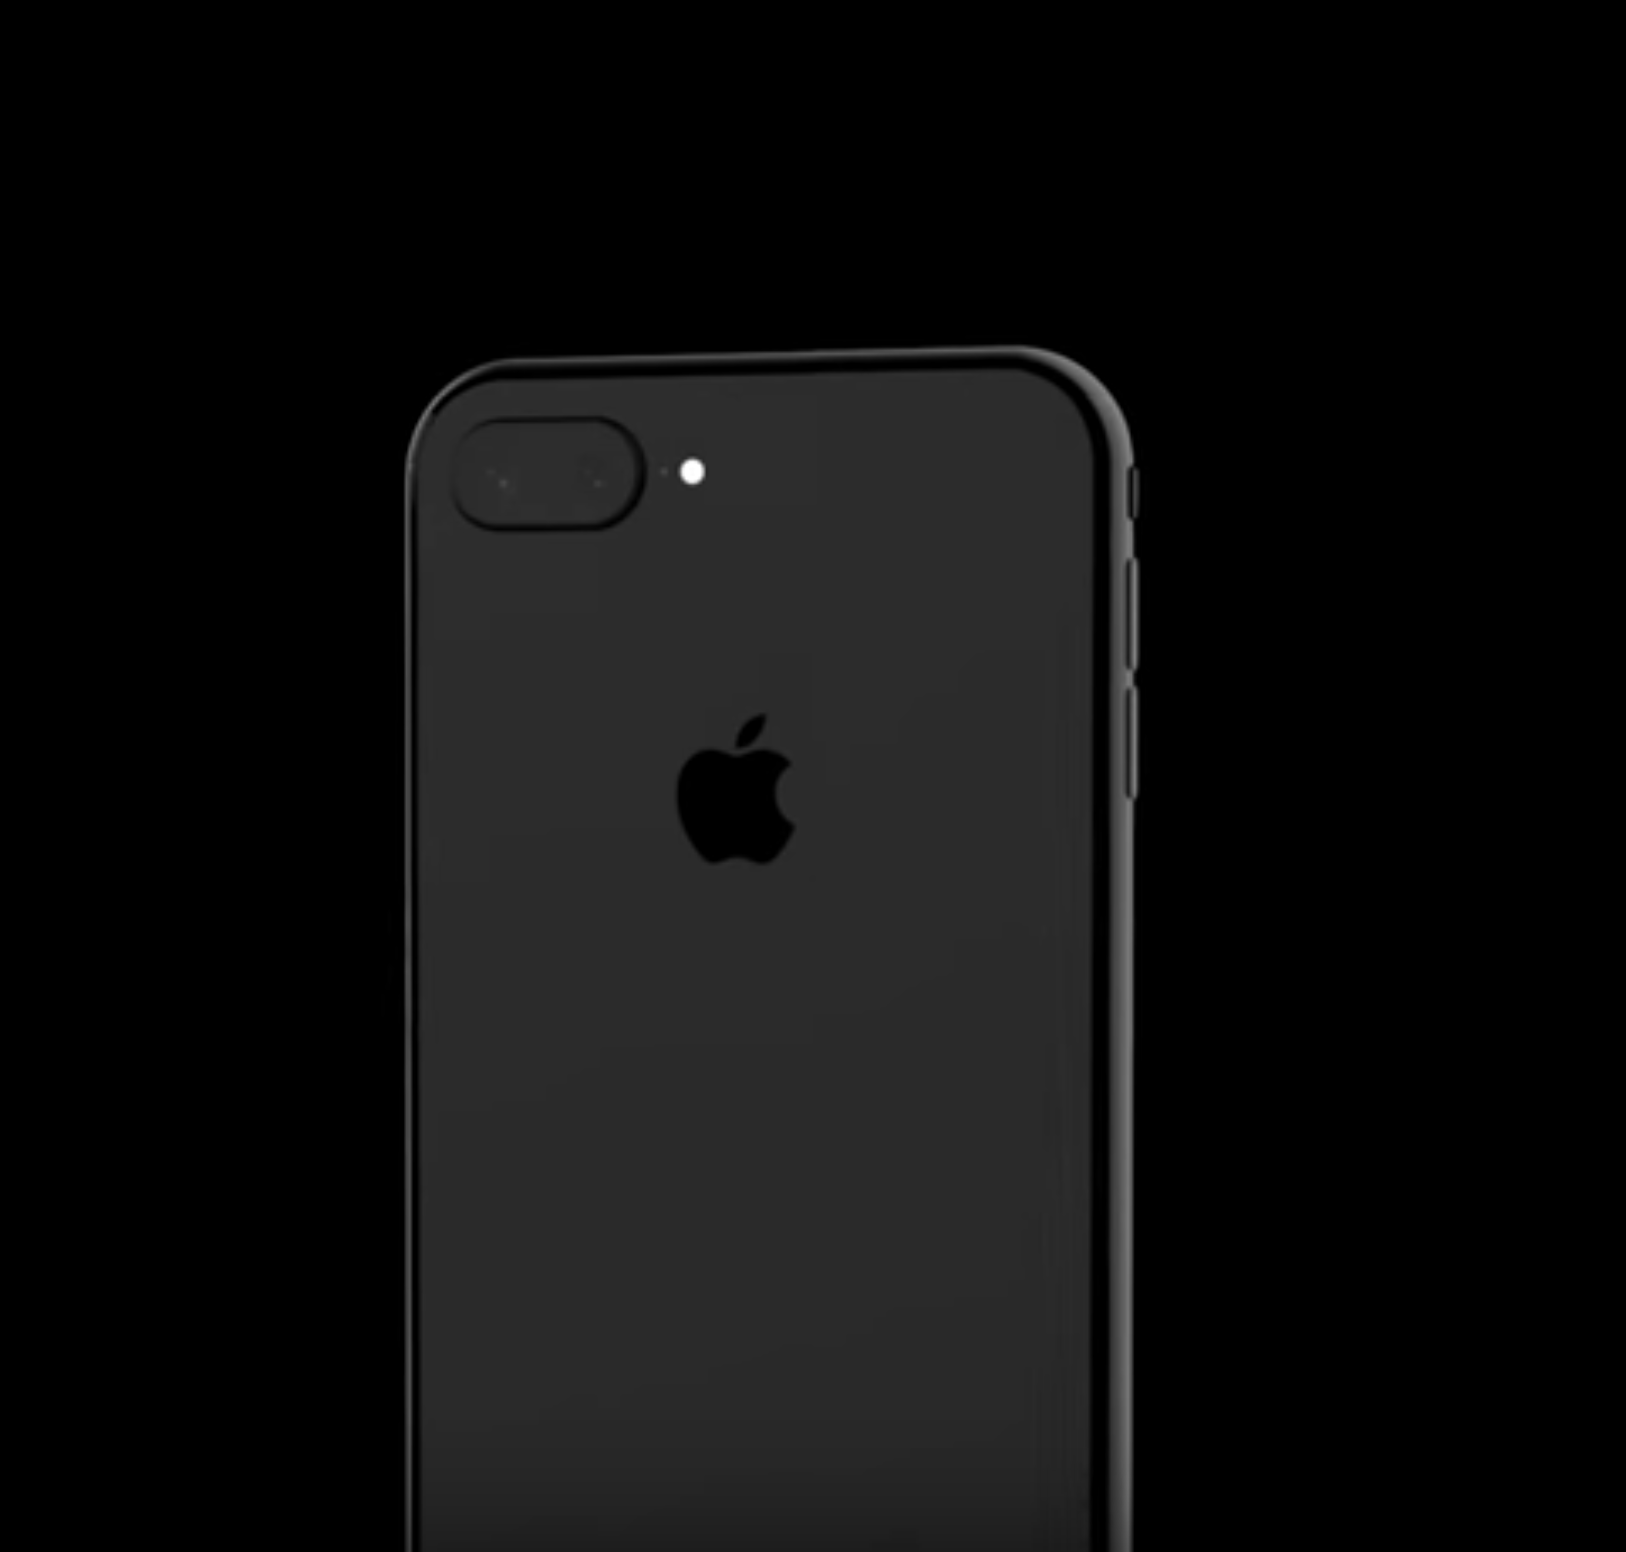 iPhone 8 Design Mockup Black